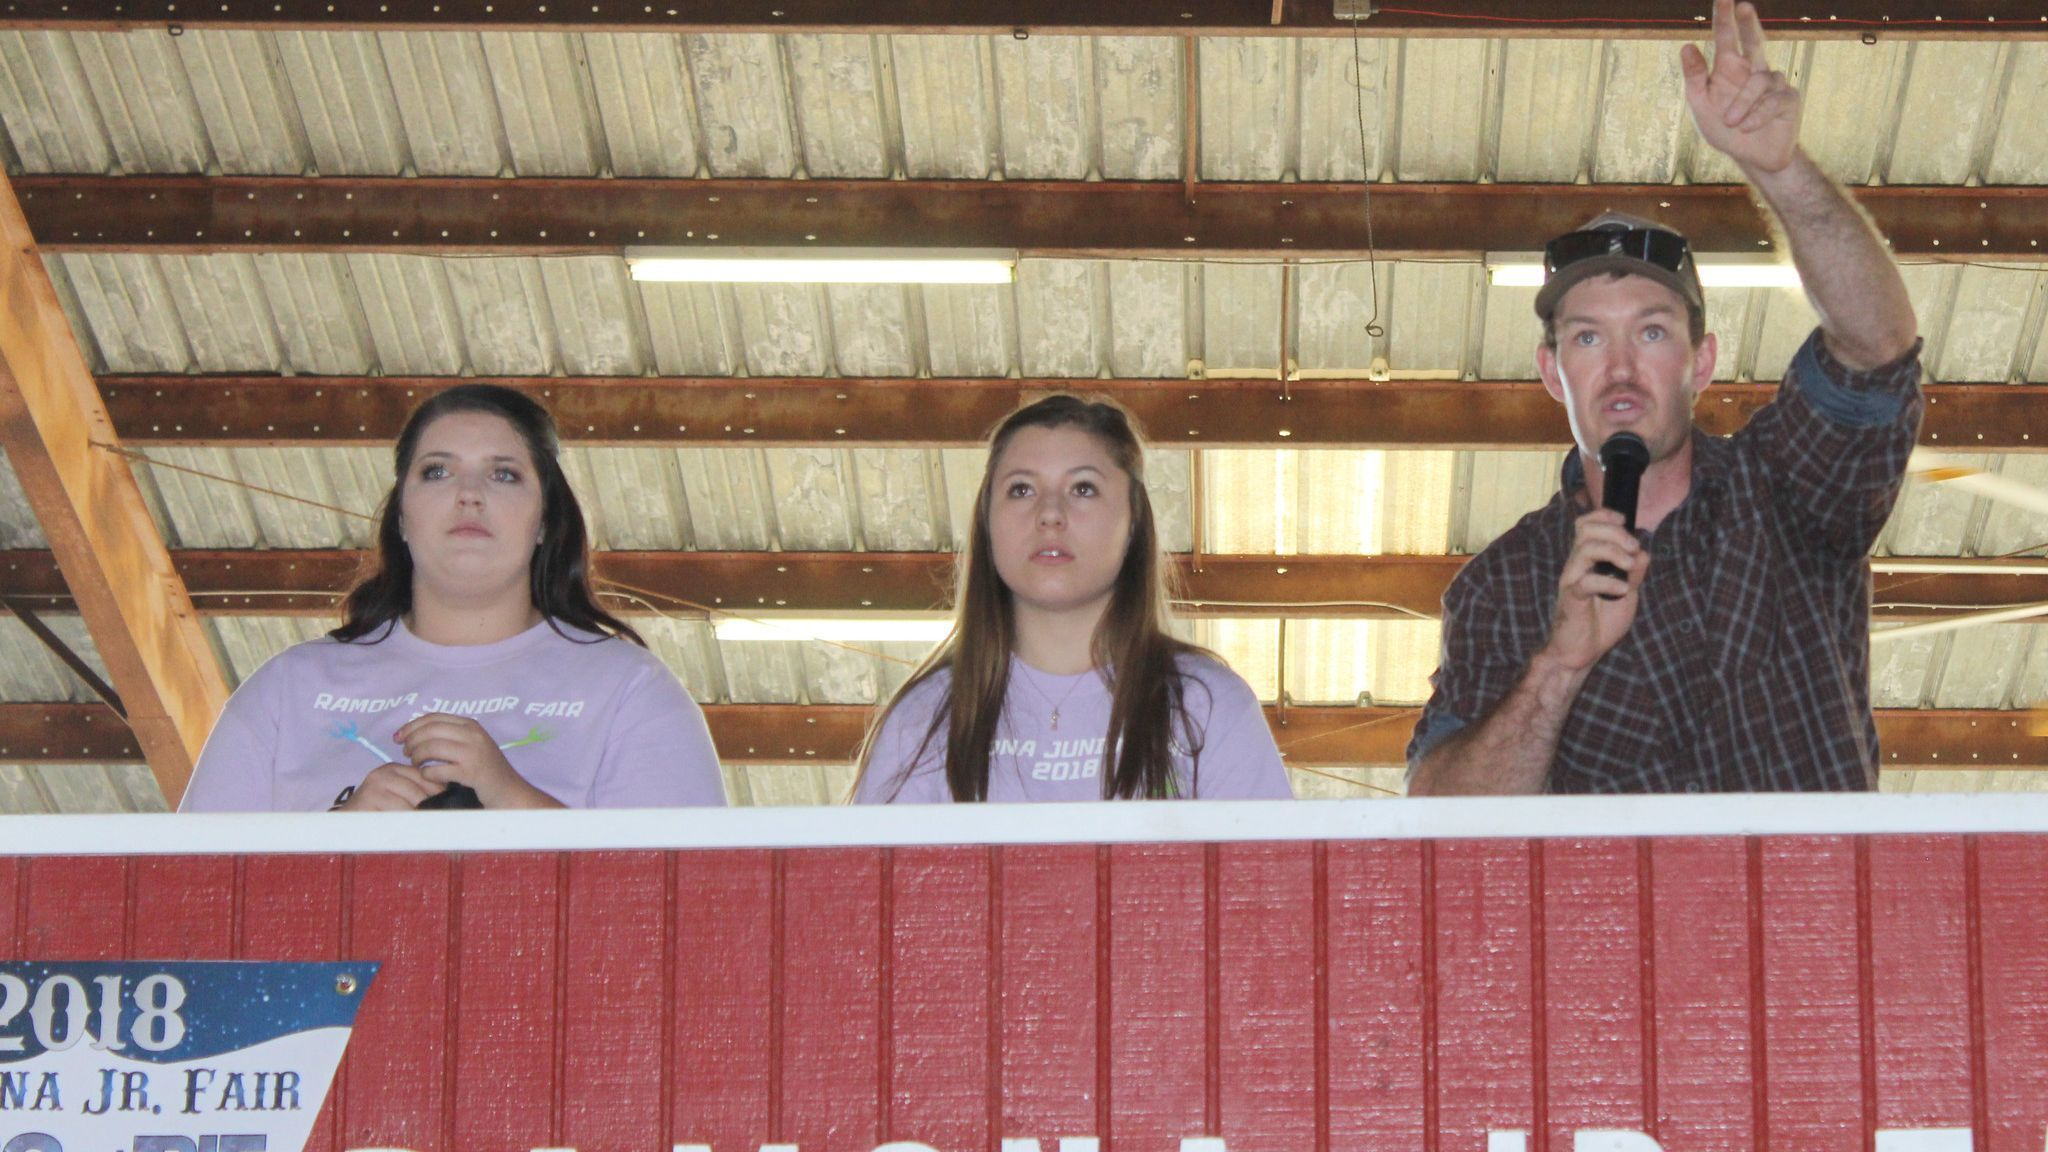 Auctioneer Brett Huff, former 4-H'er and 2011 Ramona High graduate, encourages higher bids. Assisting him are Alyssa van Tol, 4-H representative, and Catalina Gonzalez, FFA rep.